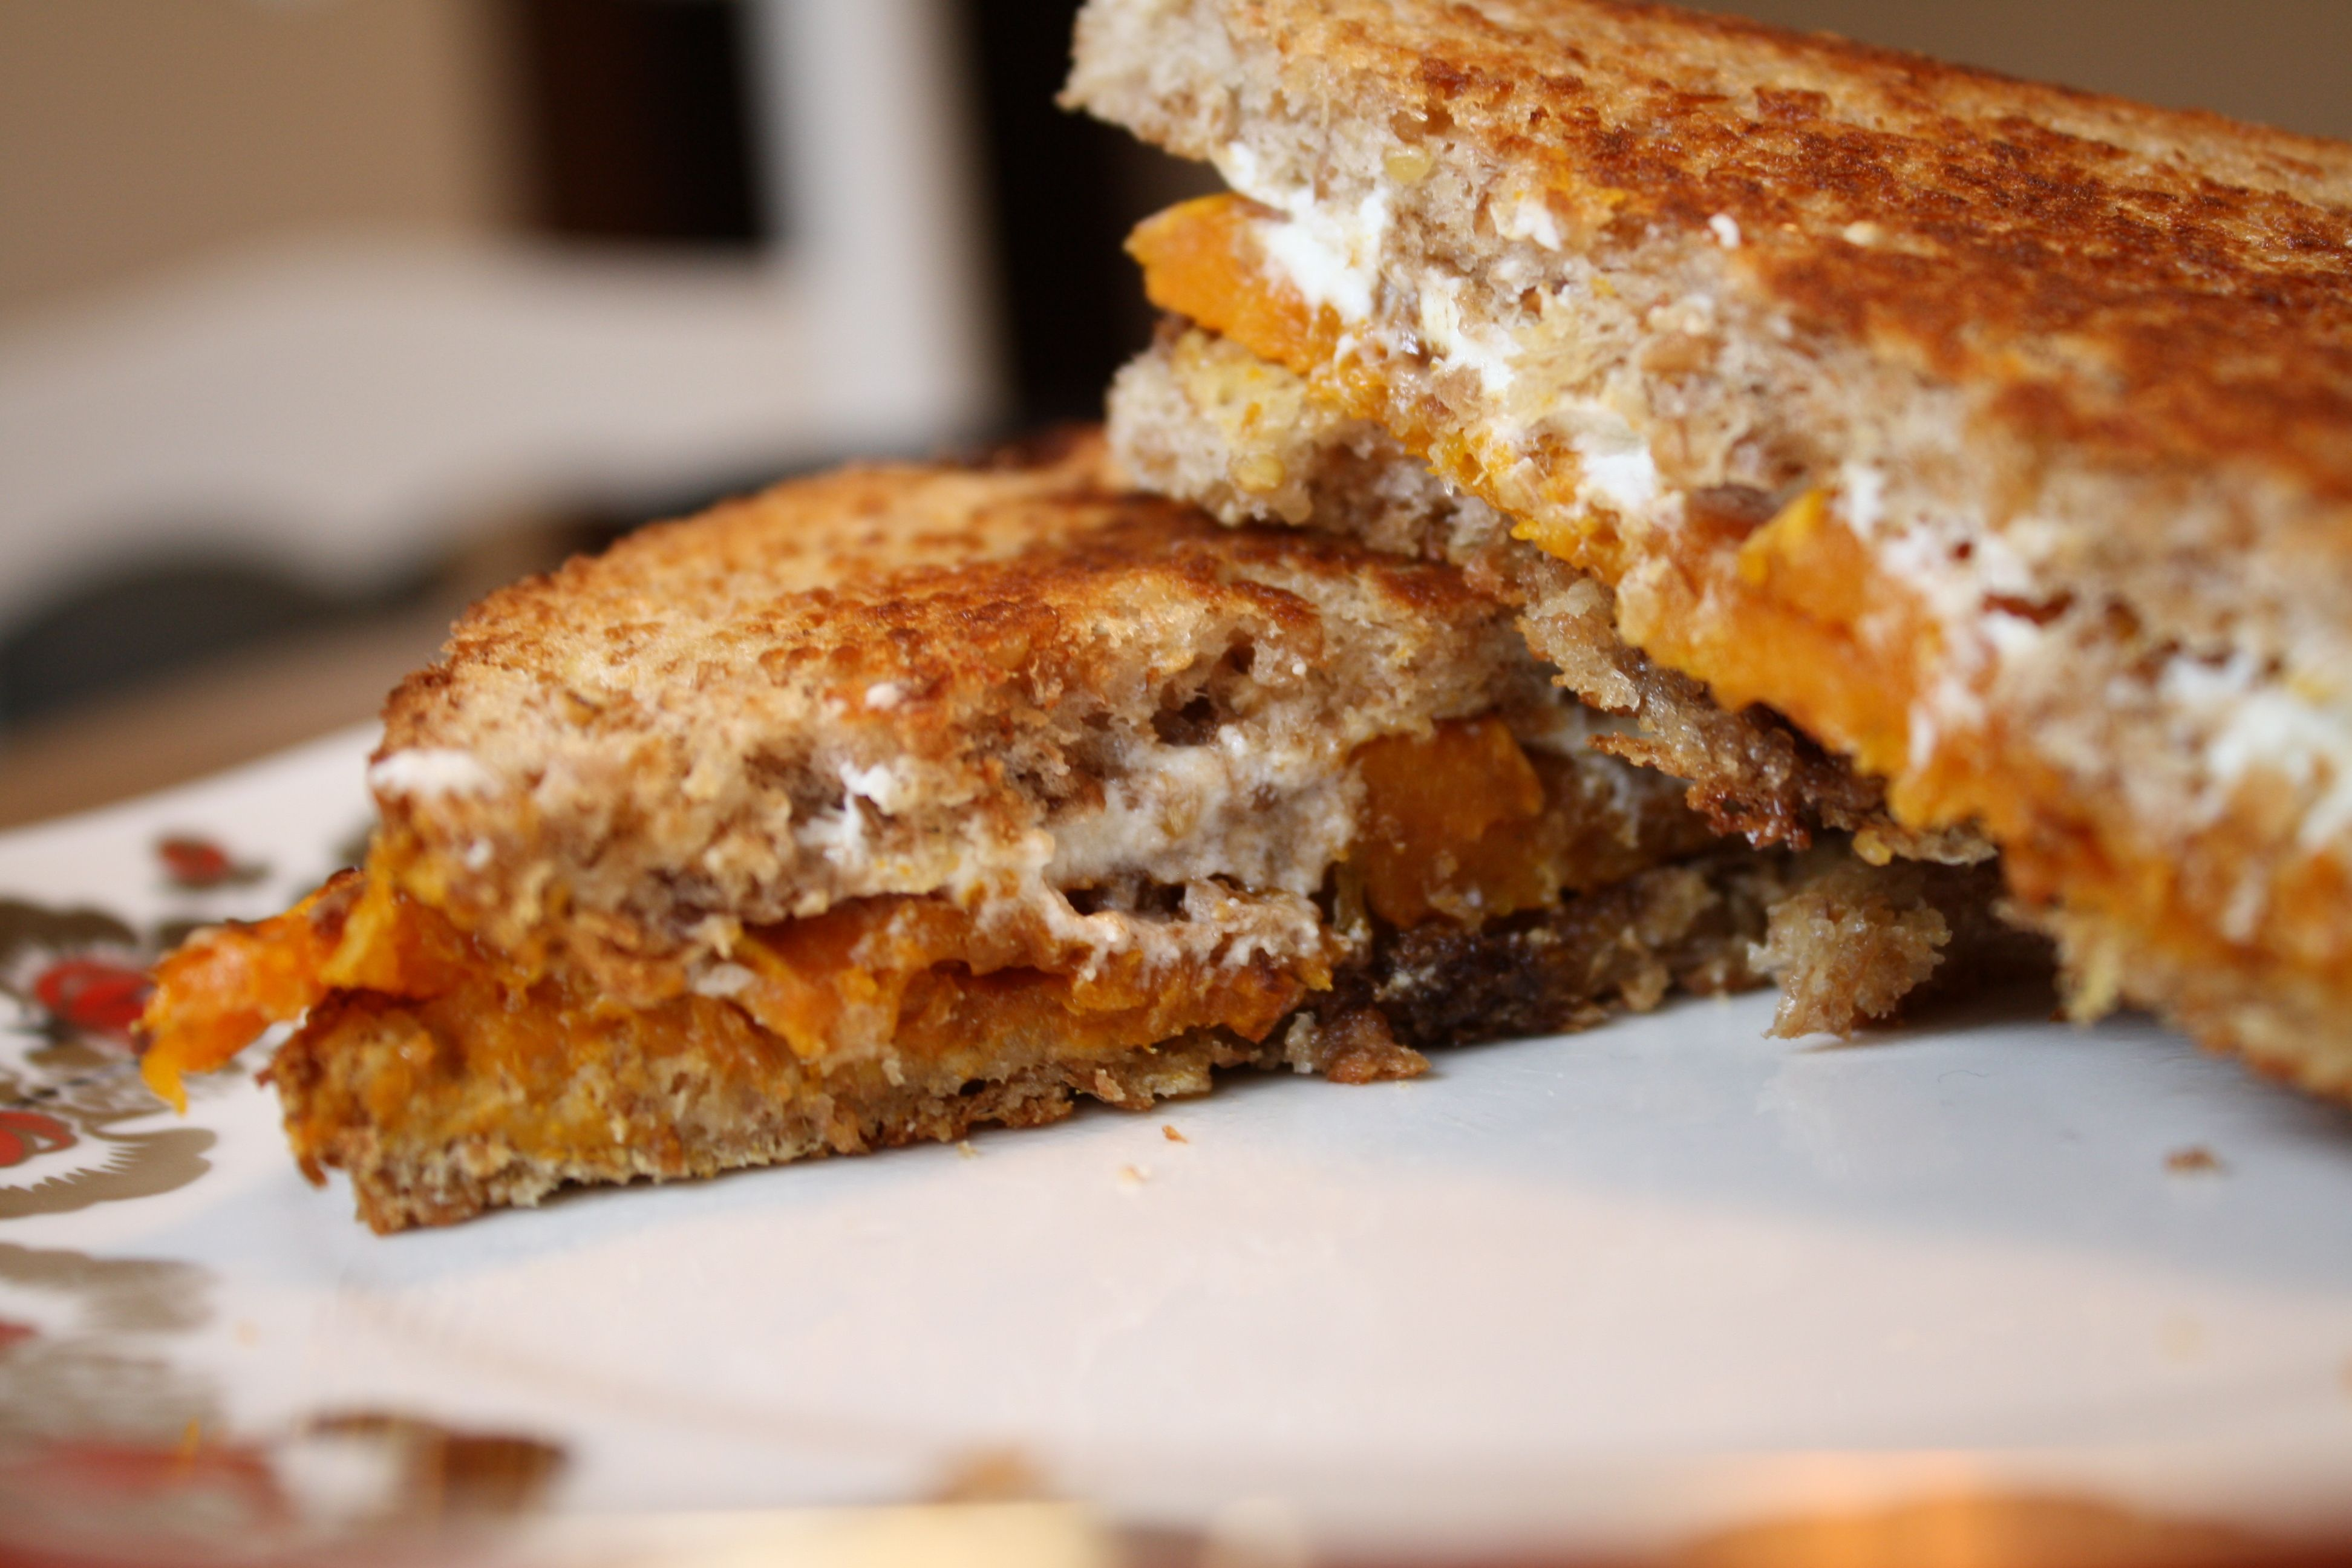 butternut squash and goat cheese panini | savory noms | Pinterest